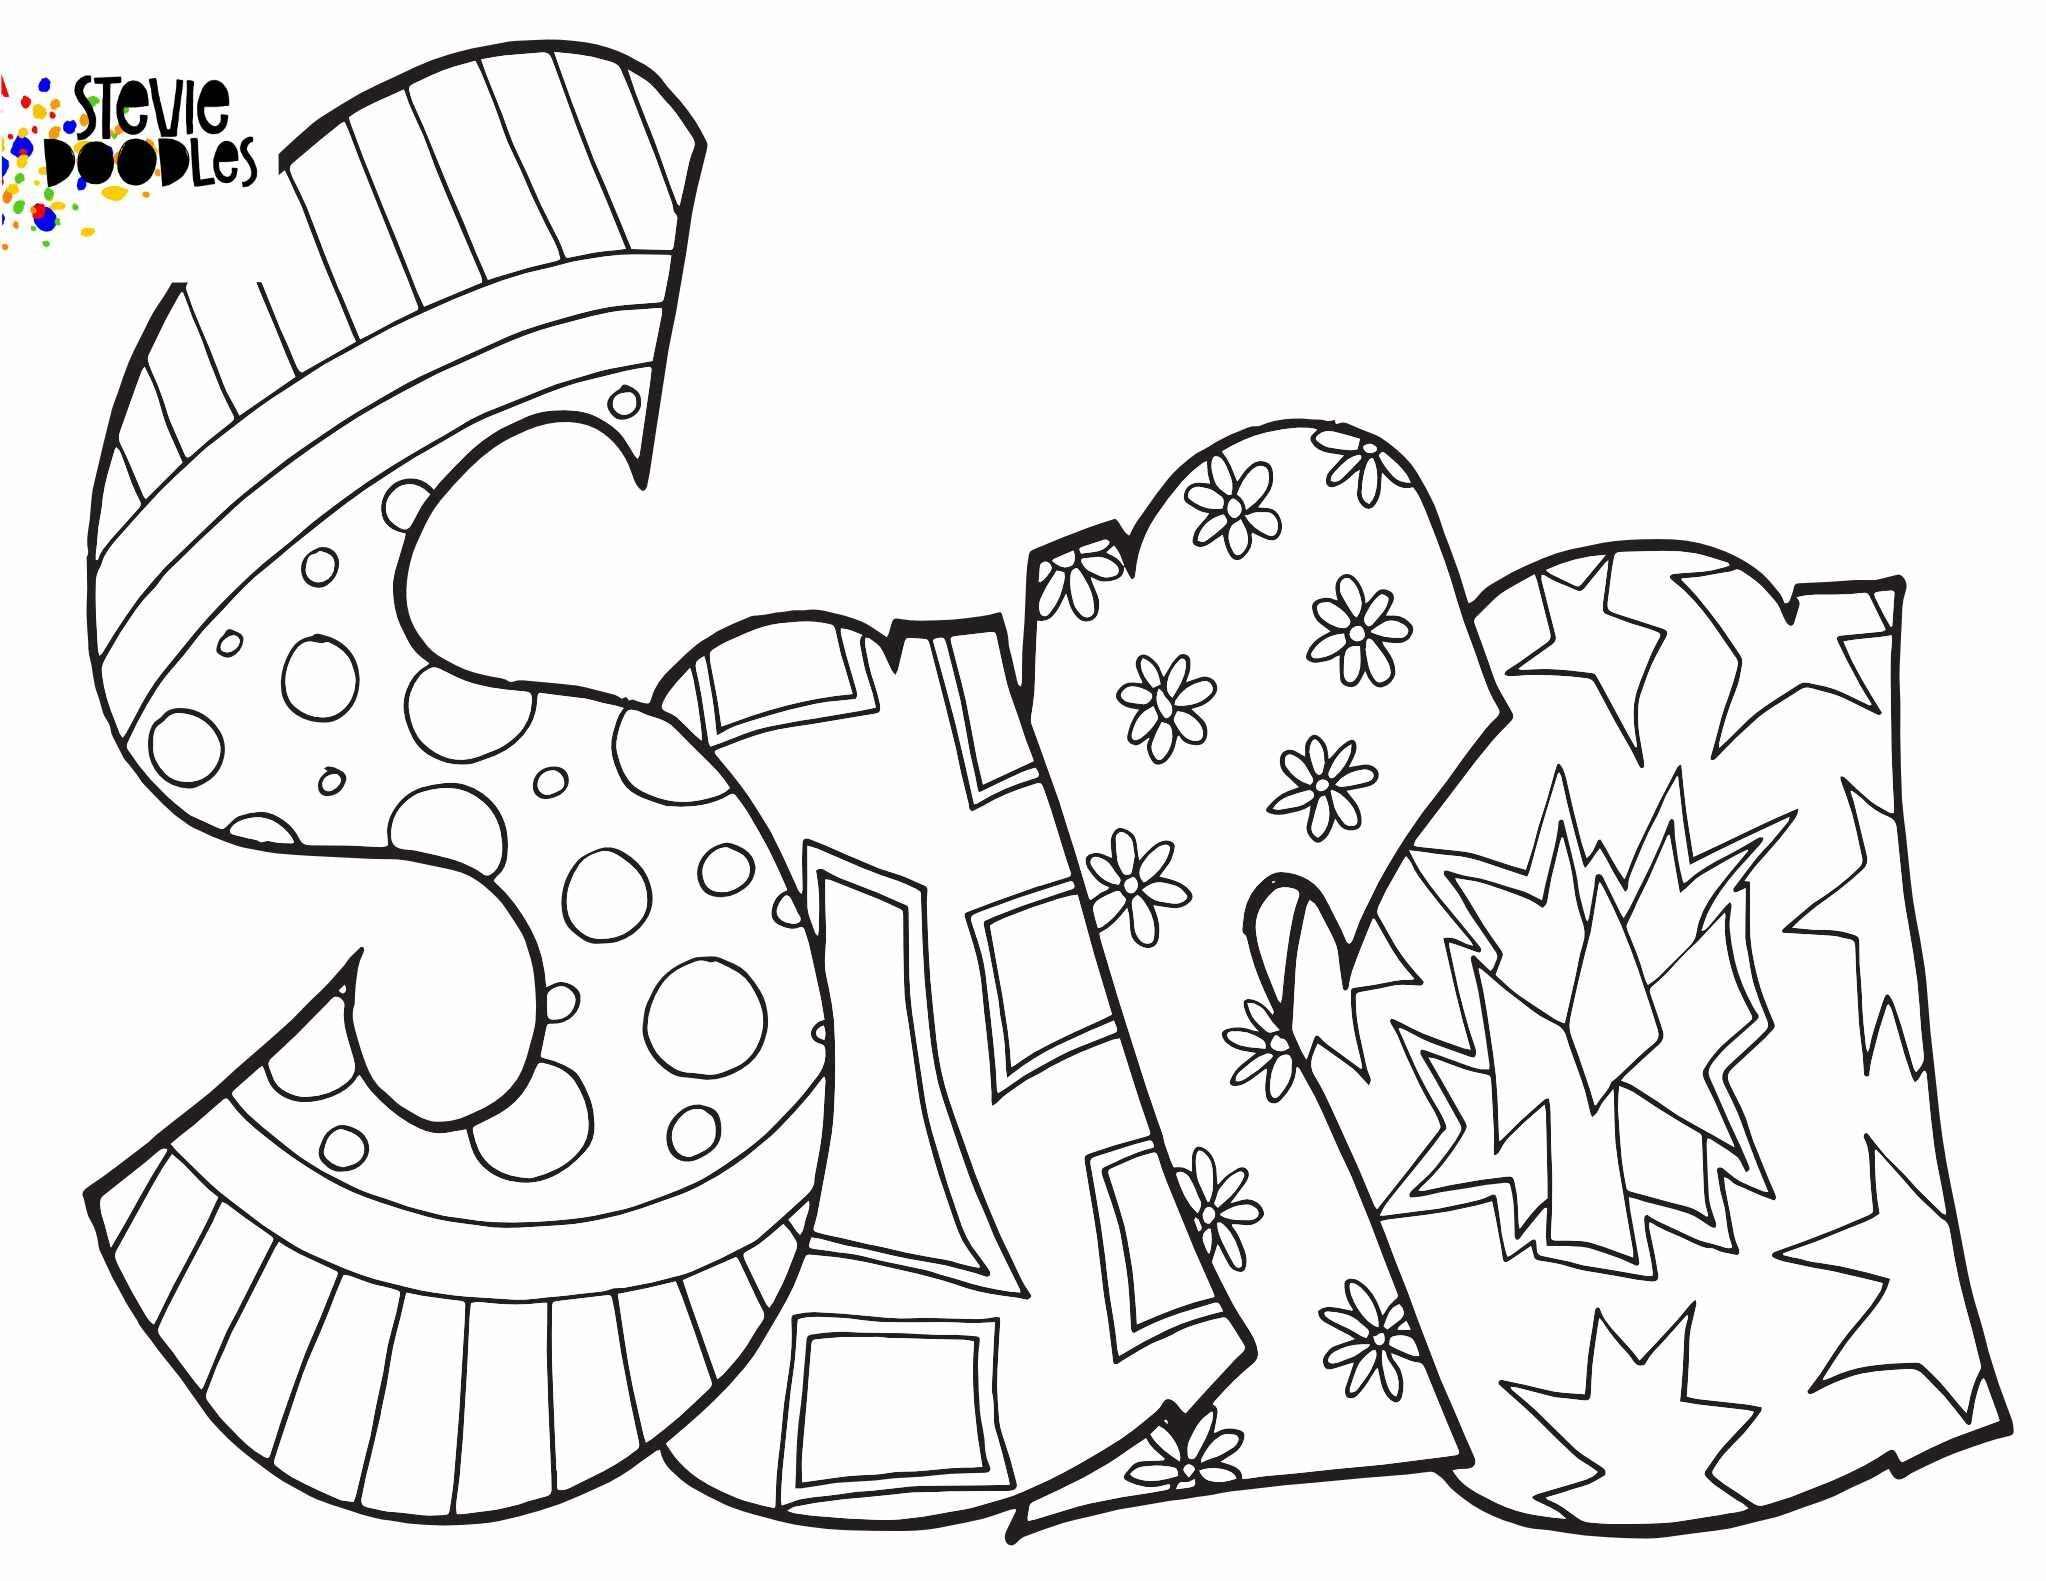 Sara Free Printable Coloring Page Stevie Doodles Free Printable Coloring Free Printable Coloring Pages Coloring Pages